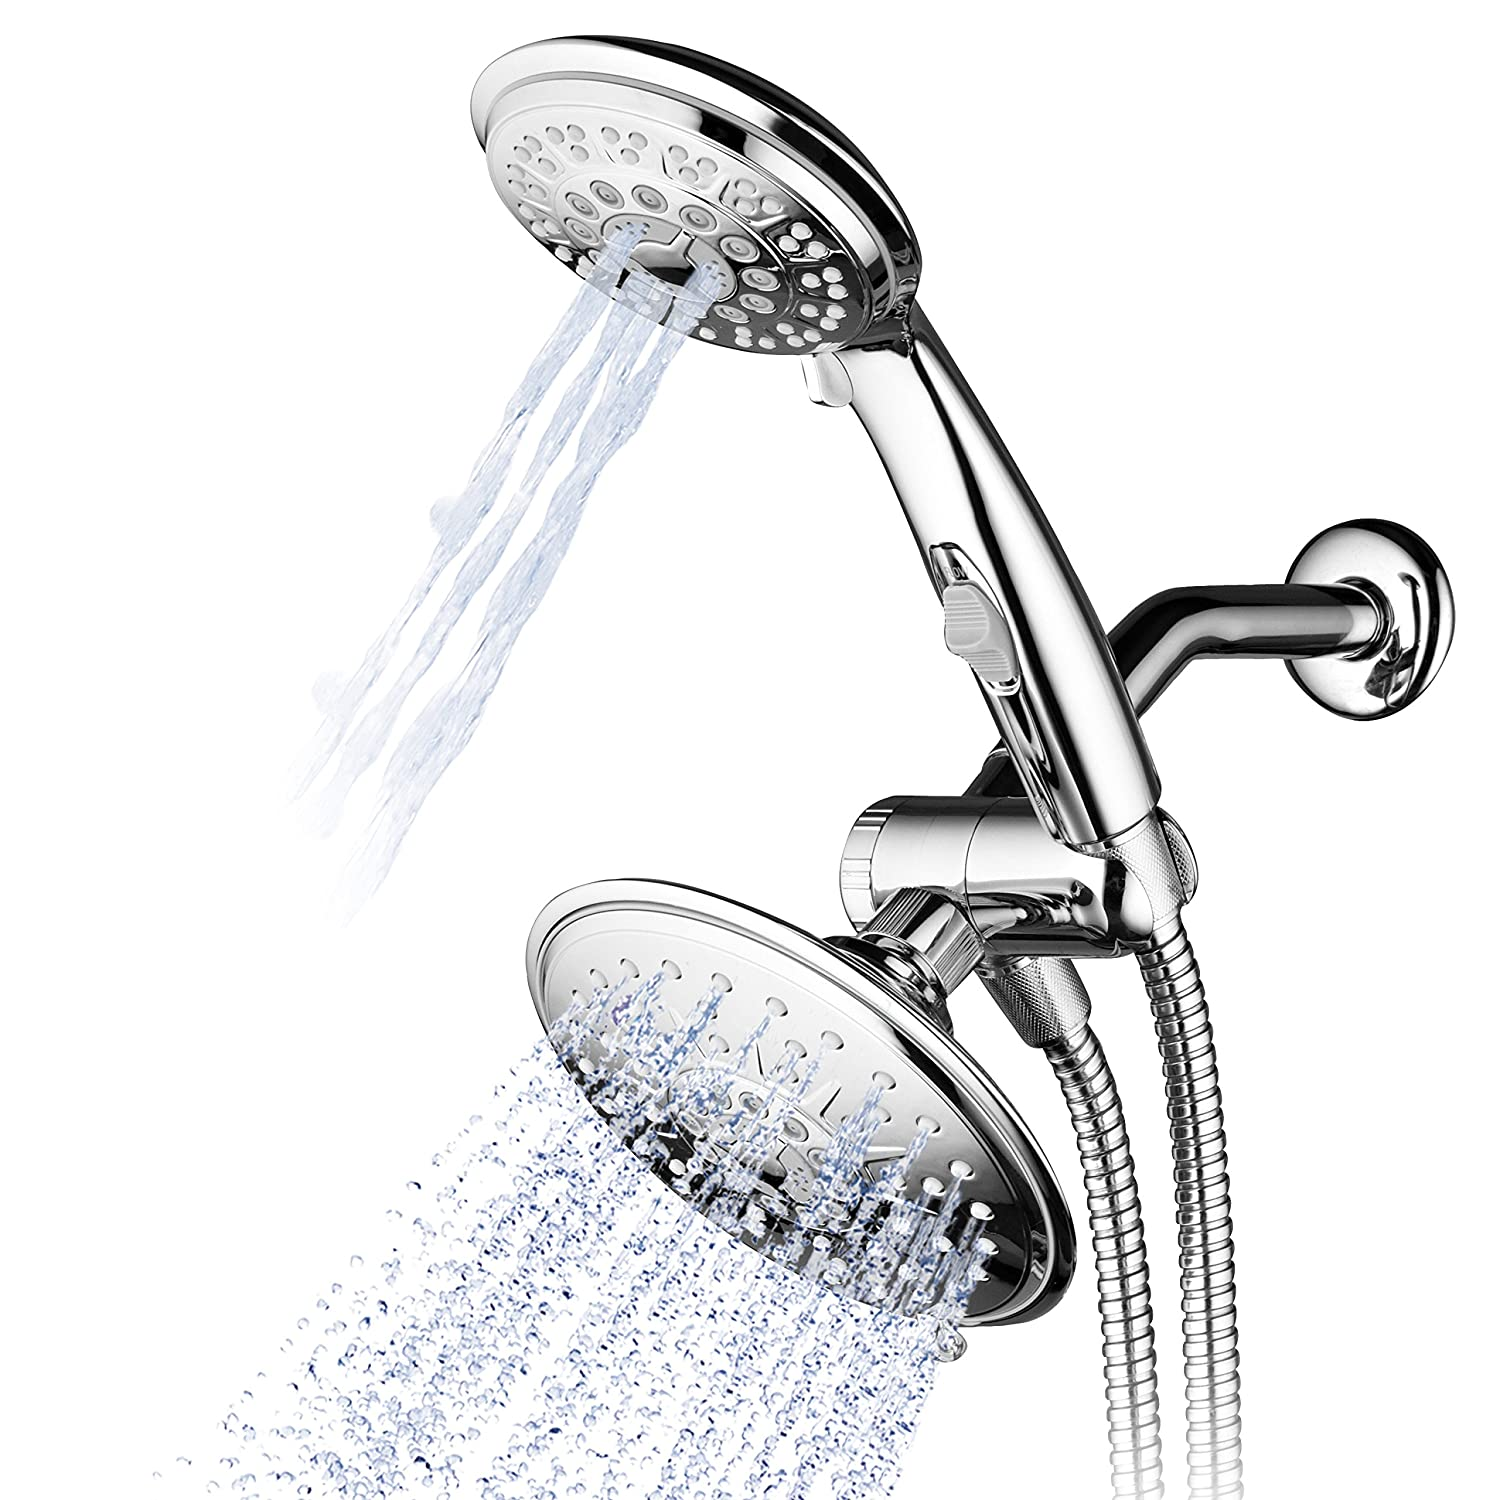 Hydroluxe® 30-Setting Ultra-Luxury 3-way 6 Inch Rainfall Shower Head|Handheld Shower Combo with Patented ON/OFF Pause Switch. Switch between shower heads or use both together! (Premium Chrome) Interlink Products 1842